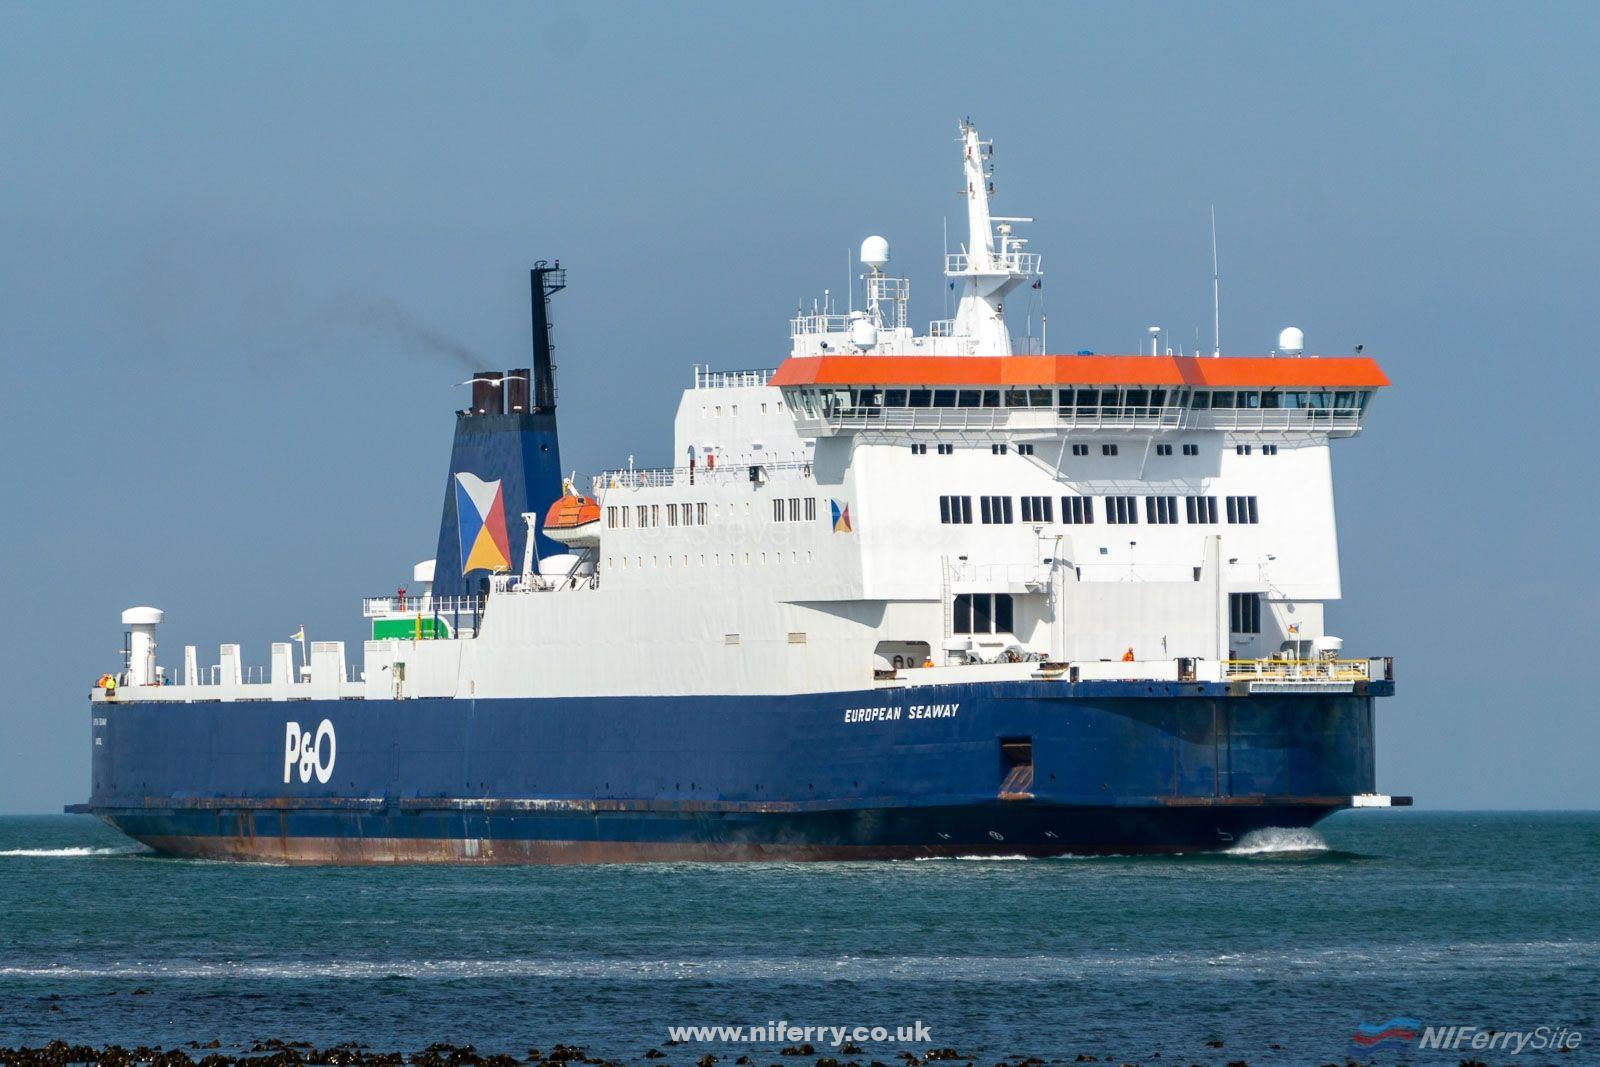 EUROPEAN SEAWAY approaches Larne at the end of her afternoon sailing from Cairnryan. This was her first day of service covering the regular vessels 2019 dry dockings, 16.05.19. Copyright ©Steven Tarbox